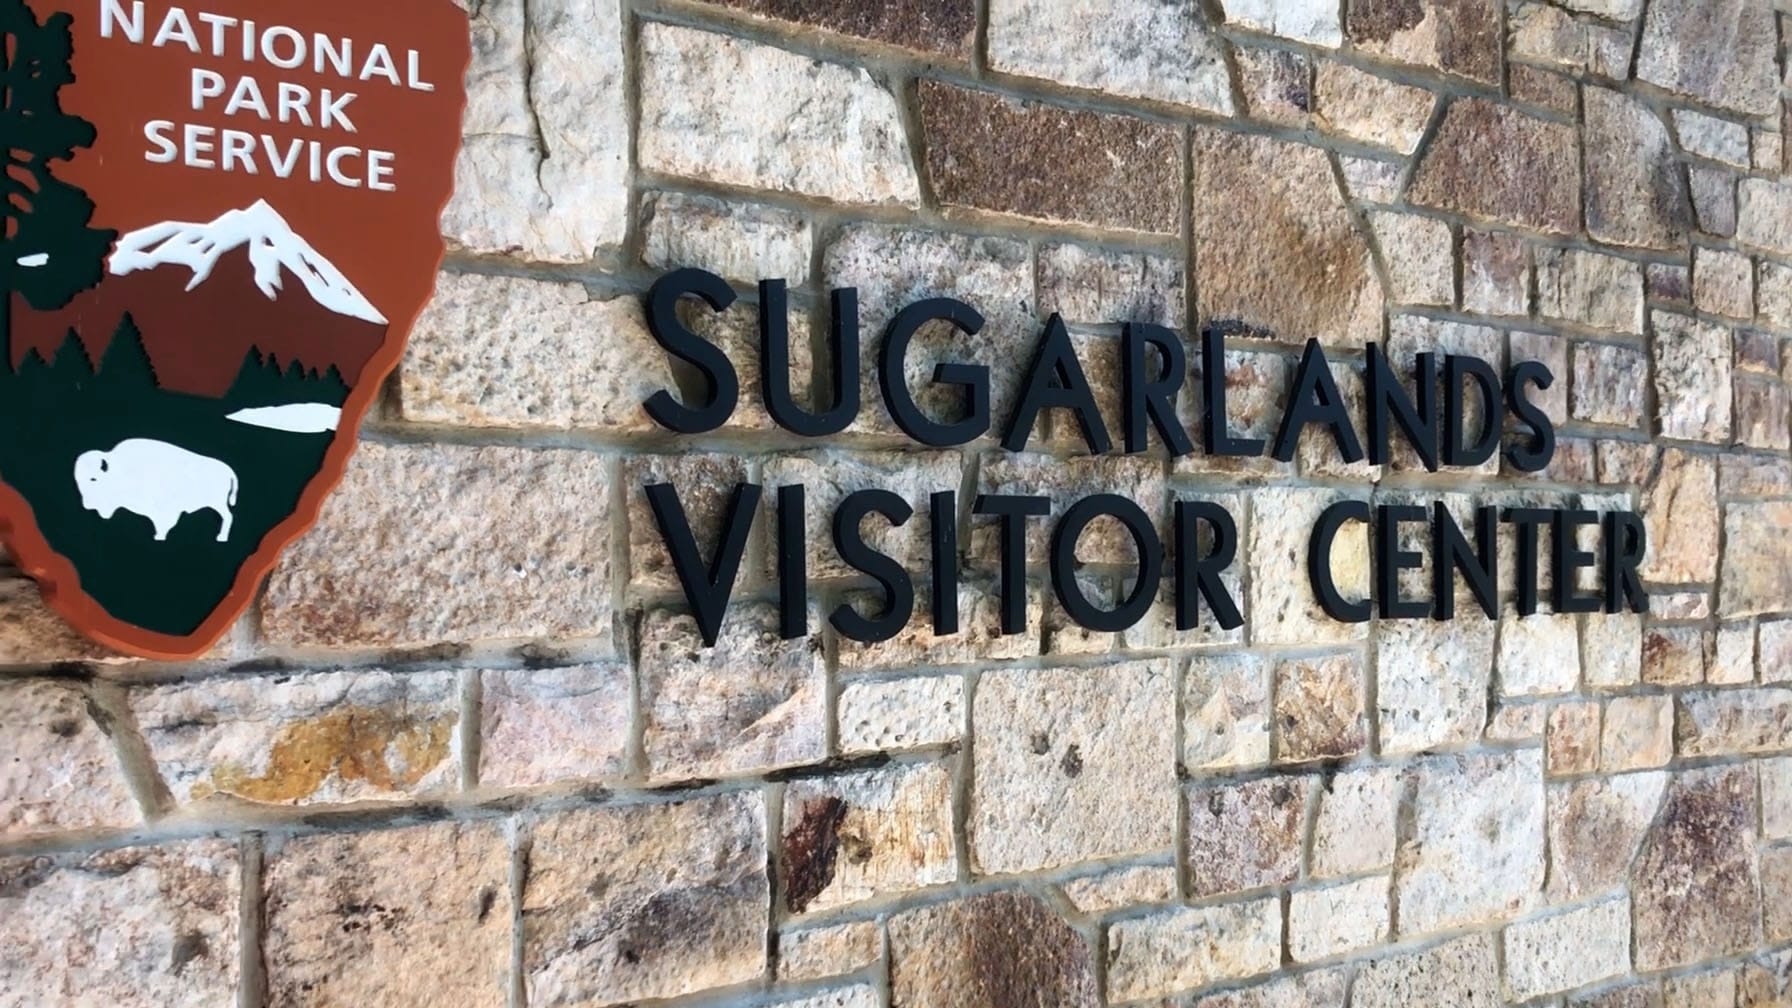 """Sugarlands Visitor Center"" sign against a brick wall."